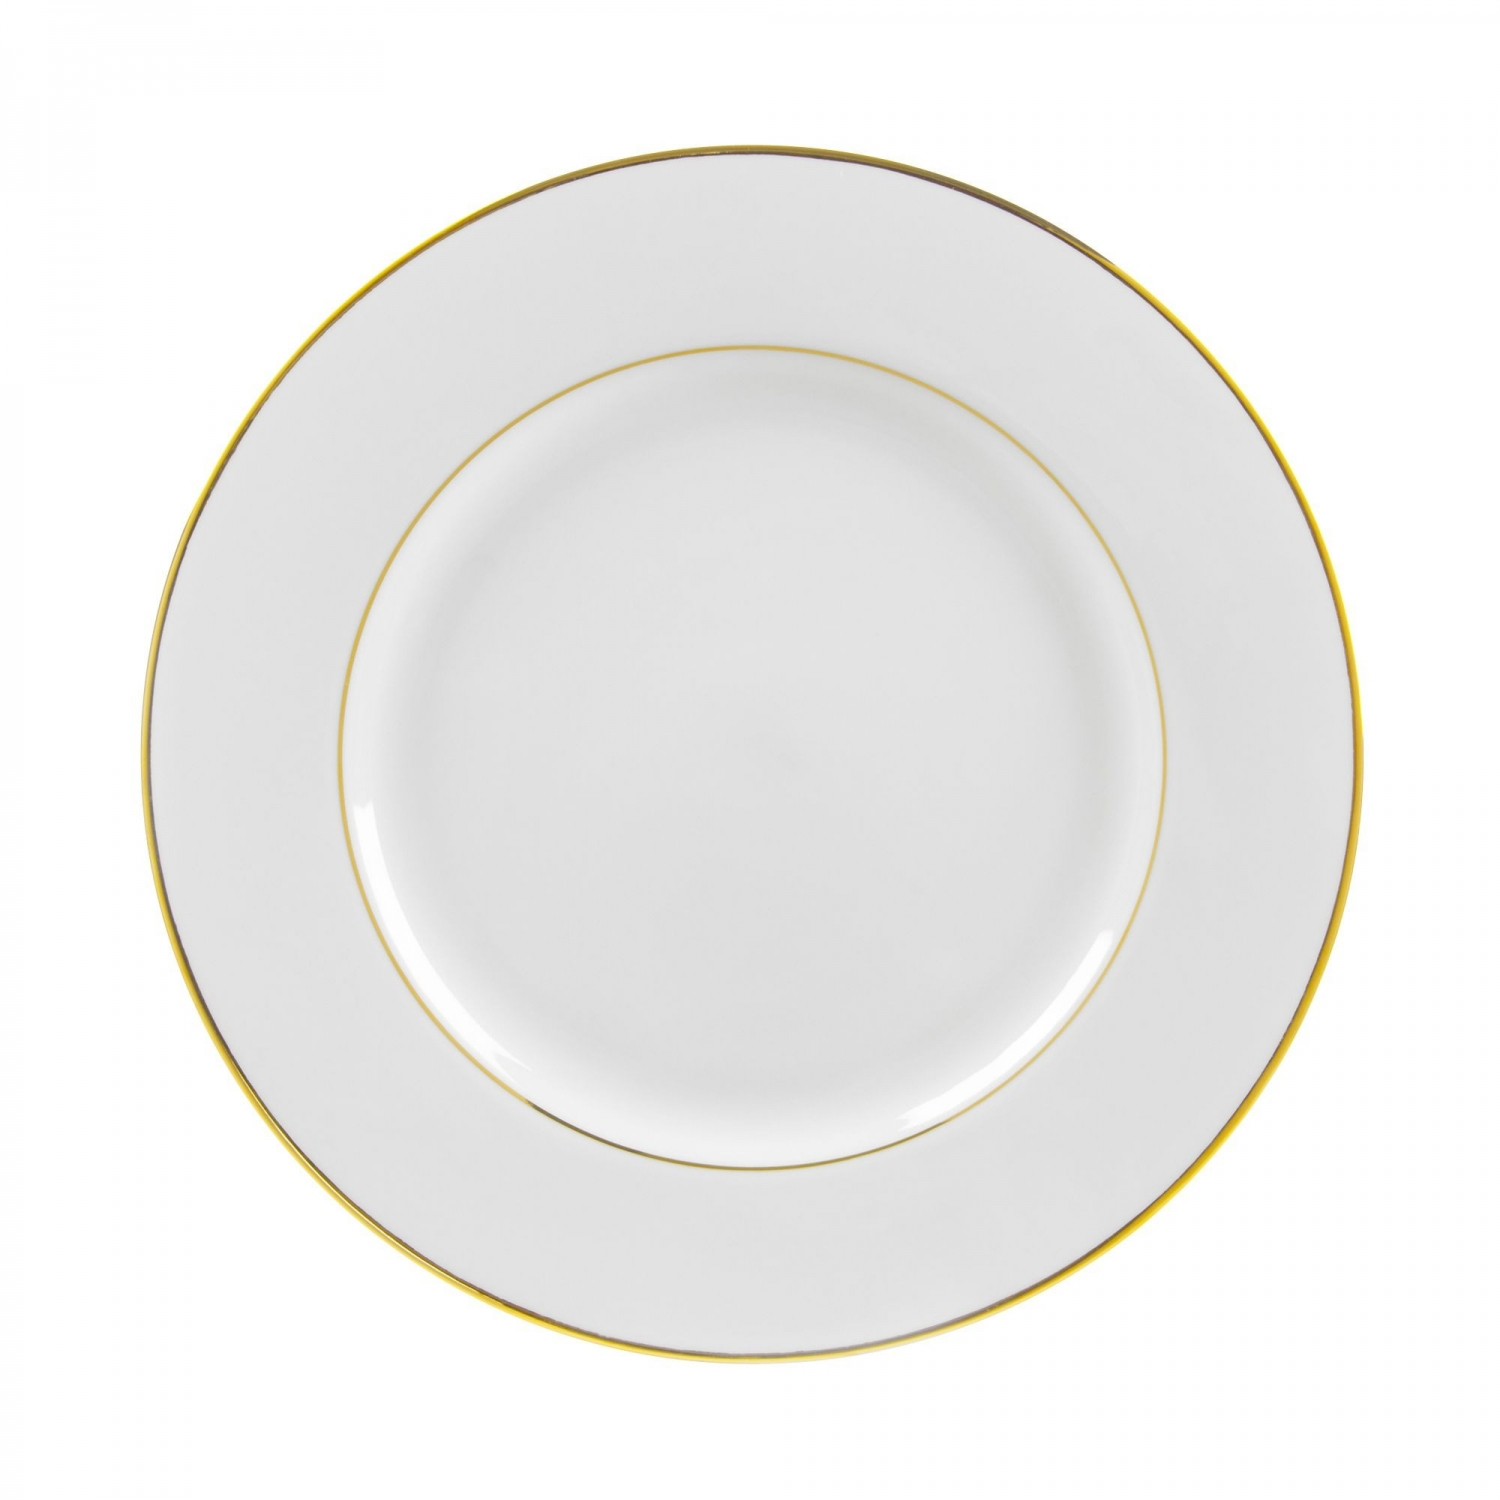 "10 Strawberry Street GLD0001 10-3/4"" Double Gold Line Dinner Plate"